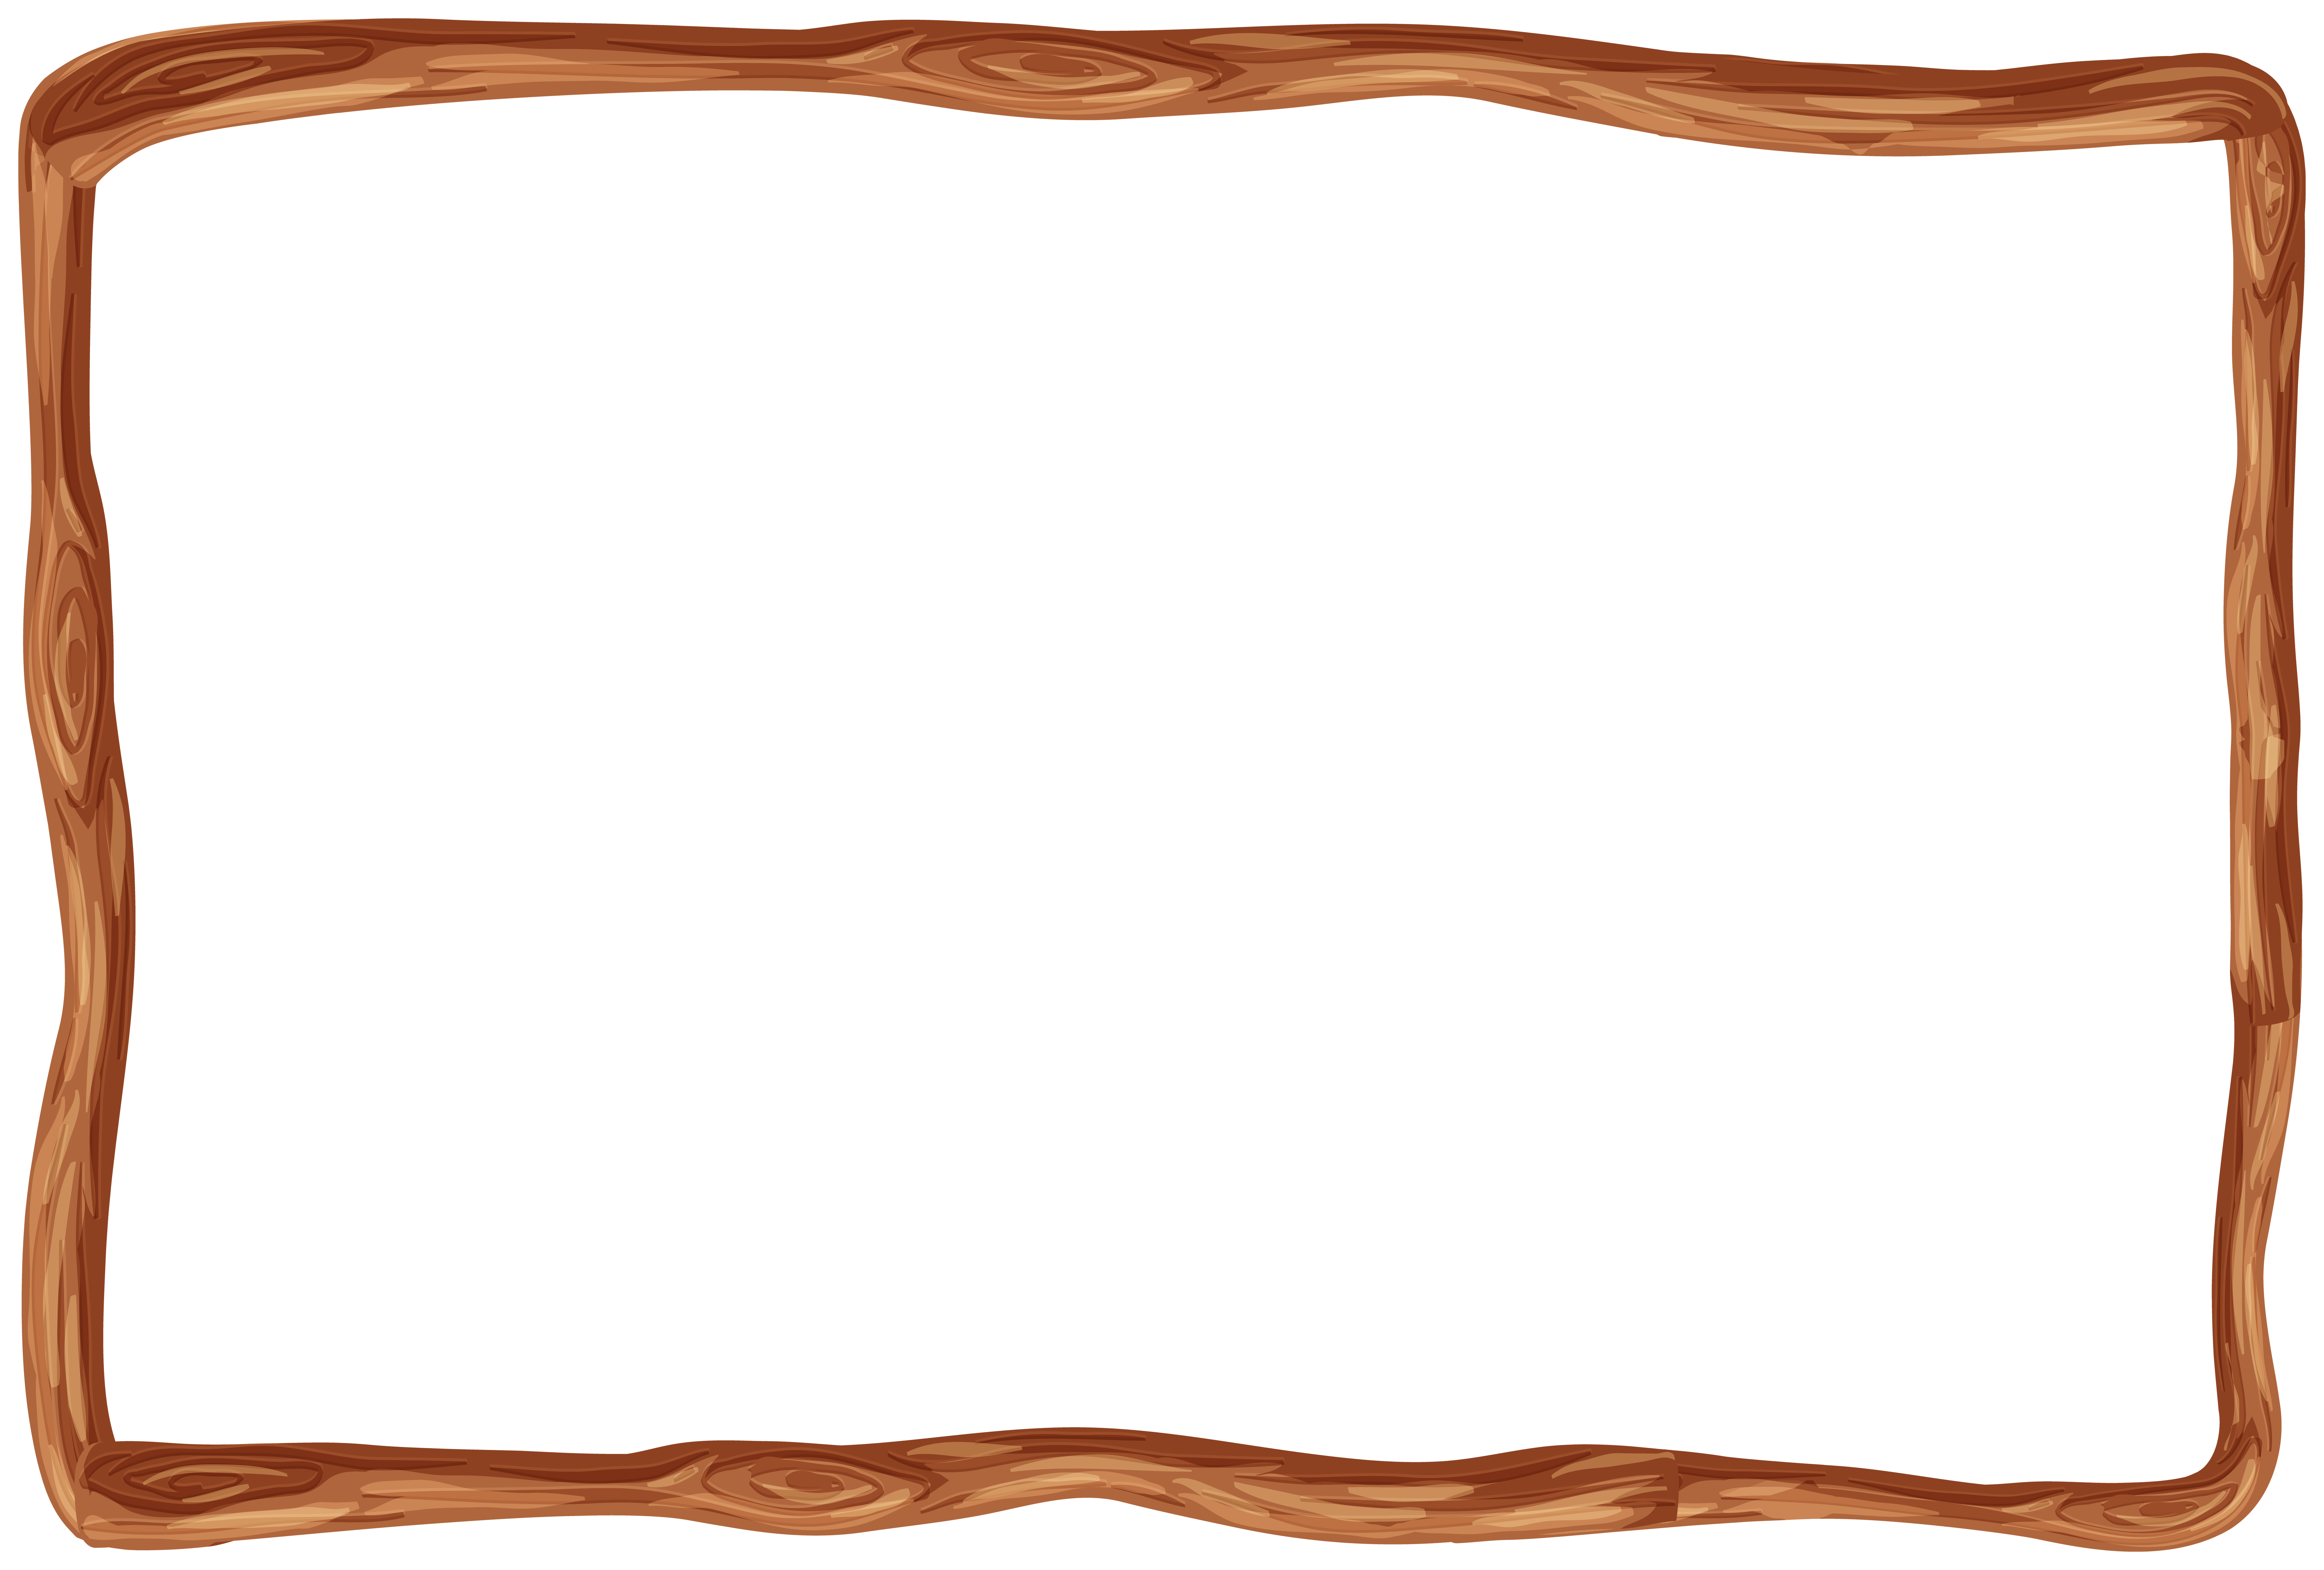 Wood frame border clipart vector royalty free stock Wooden Frame Border PNG Clipart | Gallery Yopriceville ... vector royalty free stock